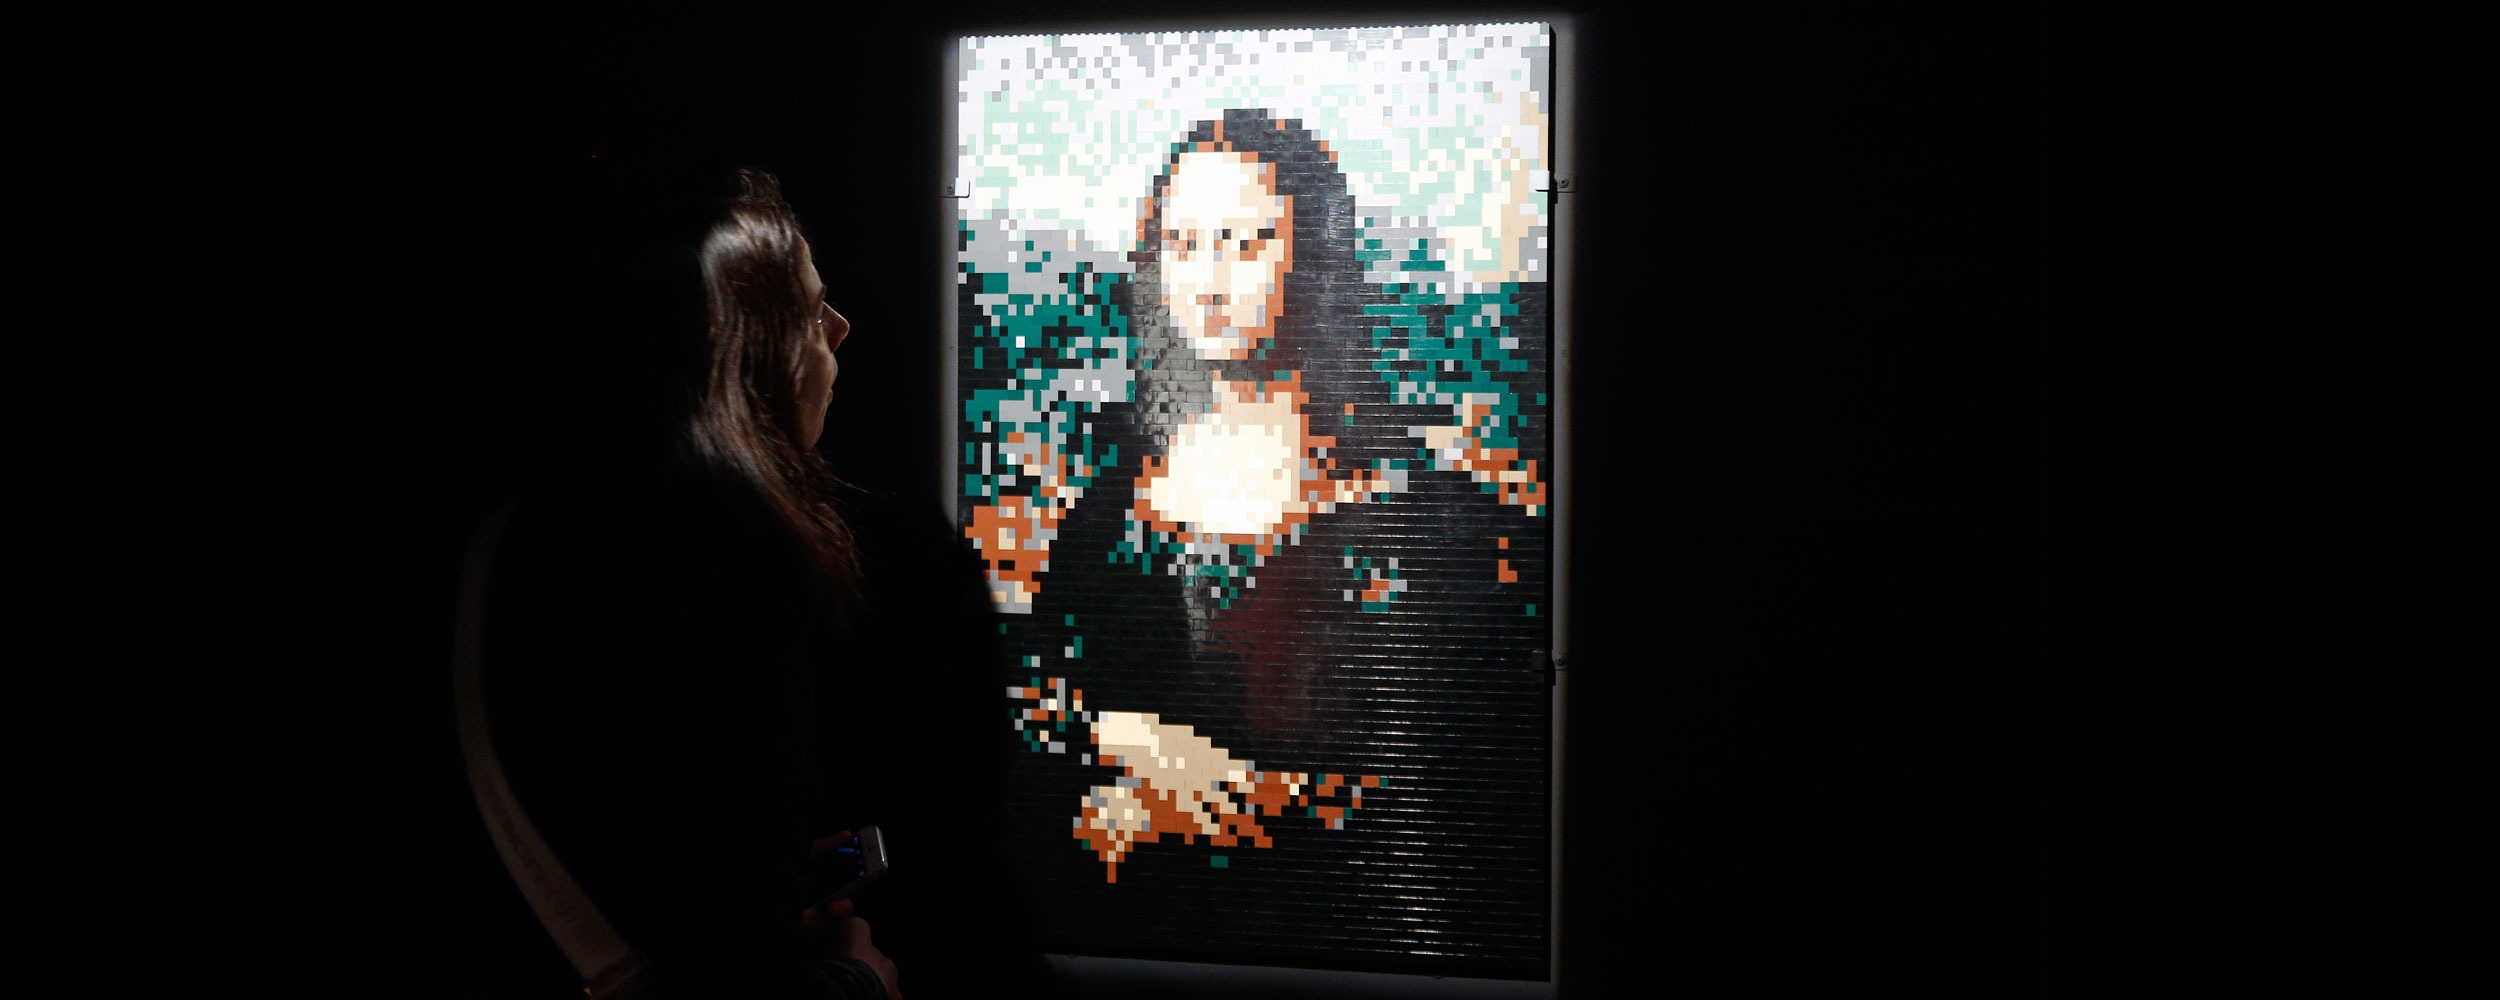 The dubious relationship between Lego and the art world